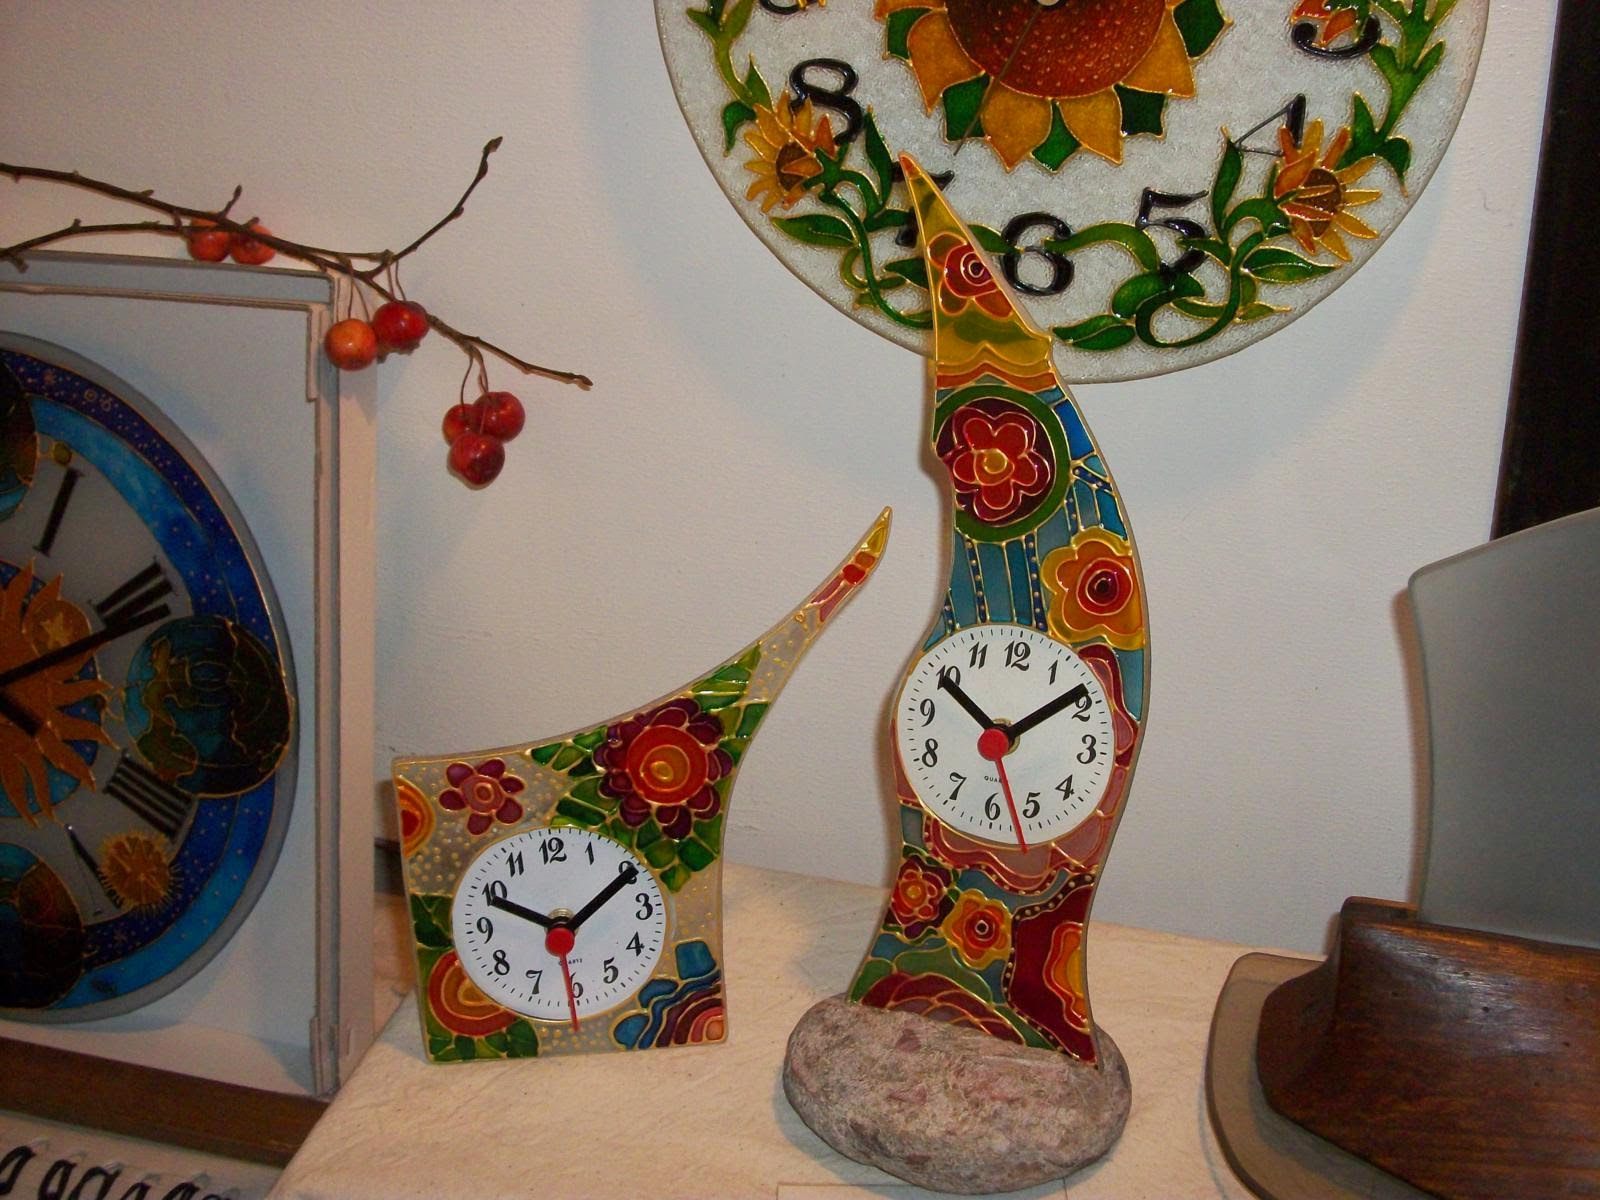 PICCOLI OROLOGI DA PARETE E DA TAVOLO - Little wall clocks and table clocks